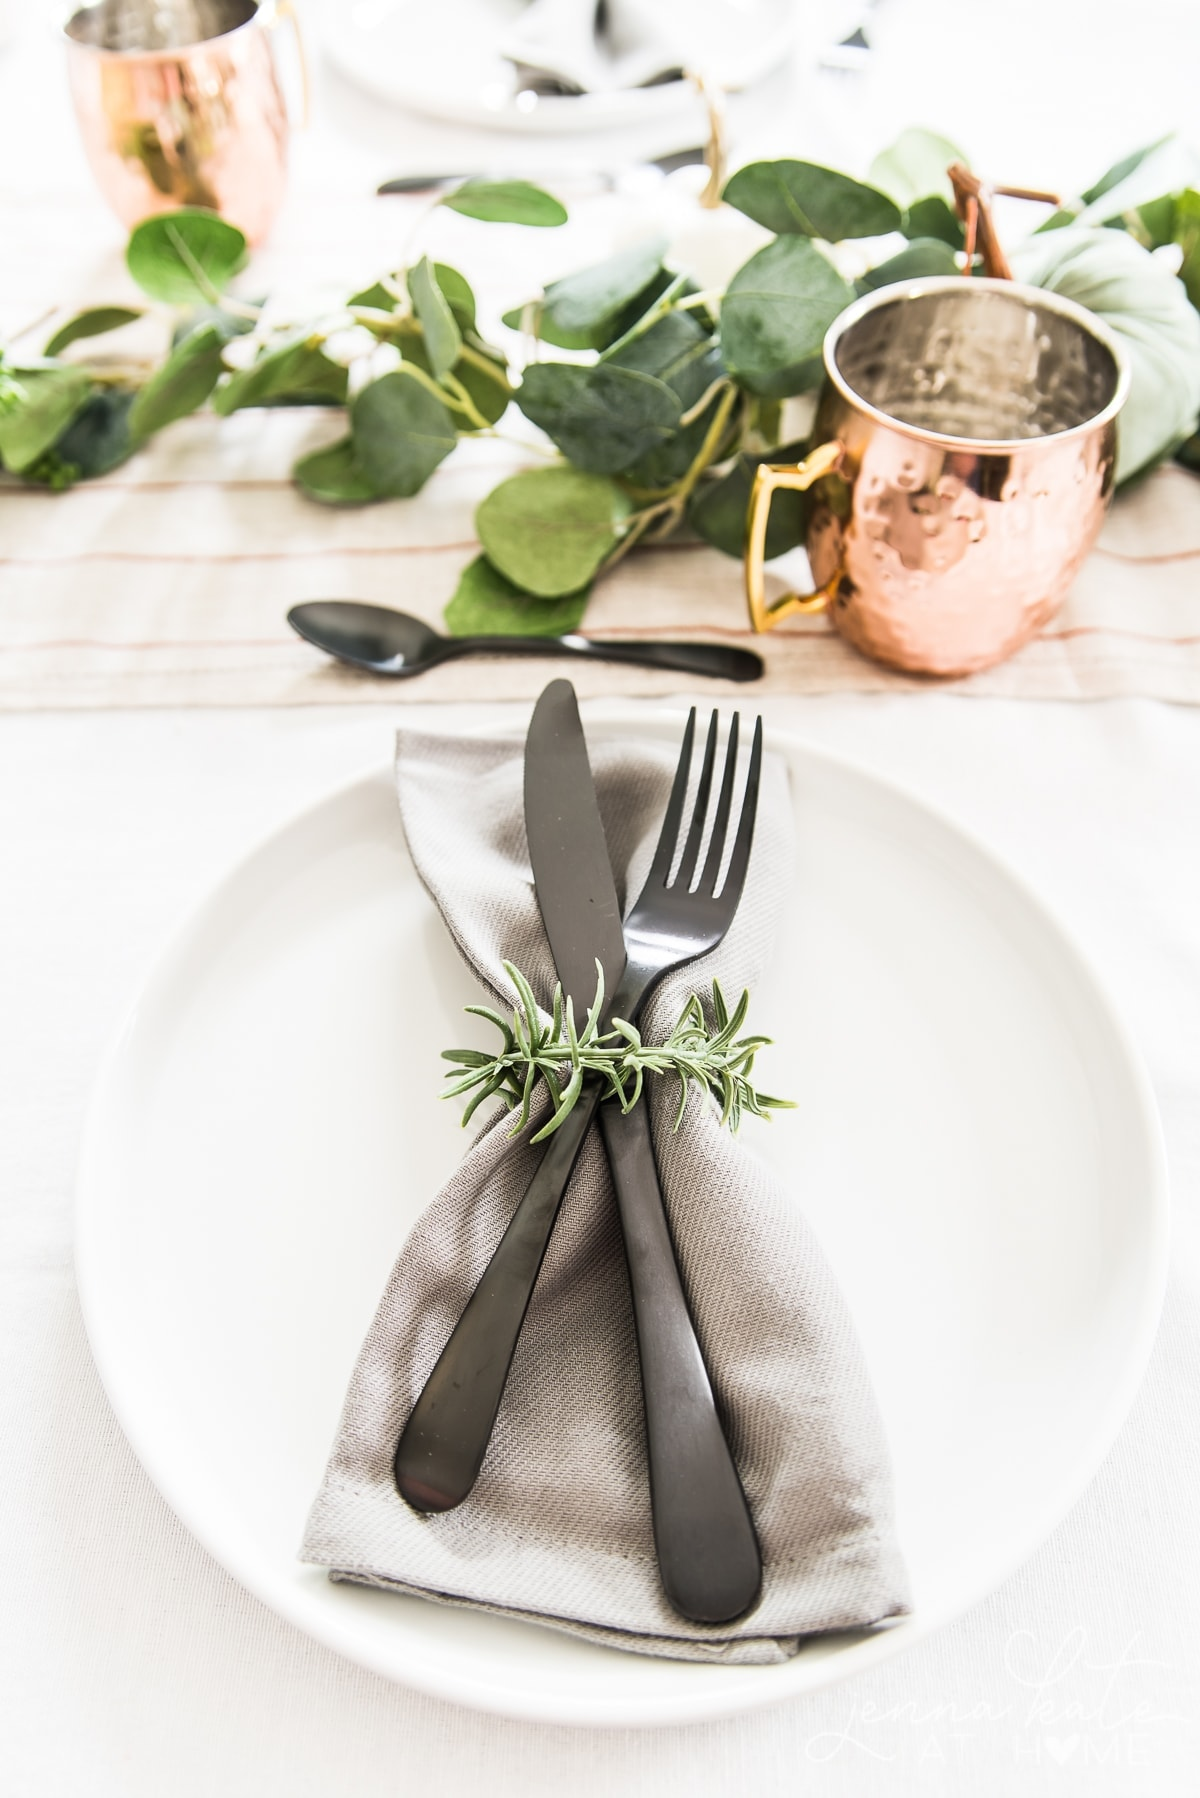 New table runner and black flatware for fall tabletop decor